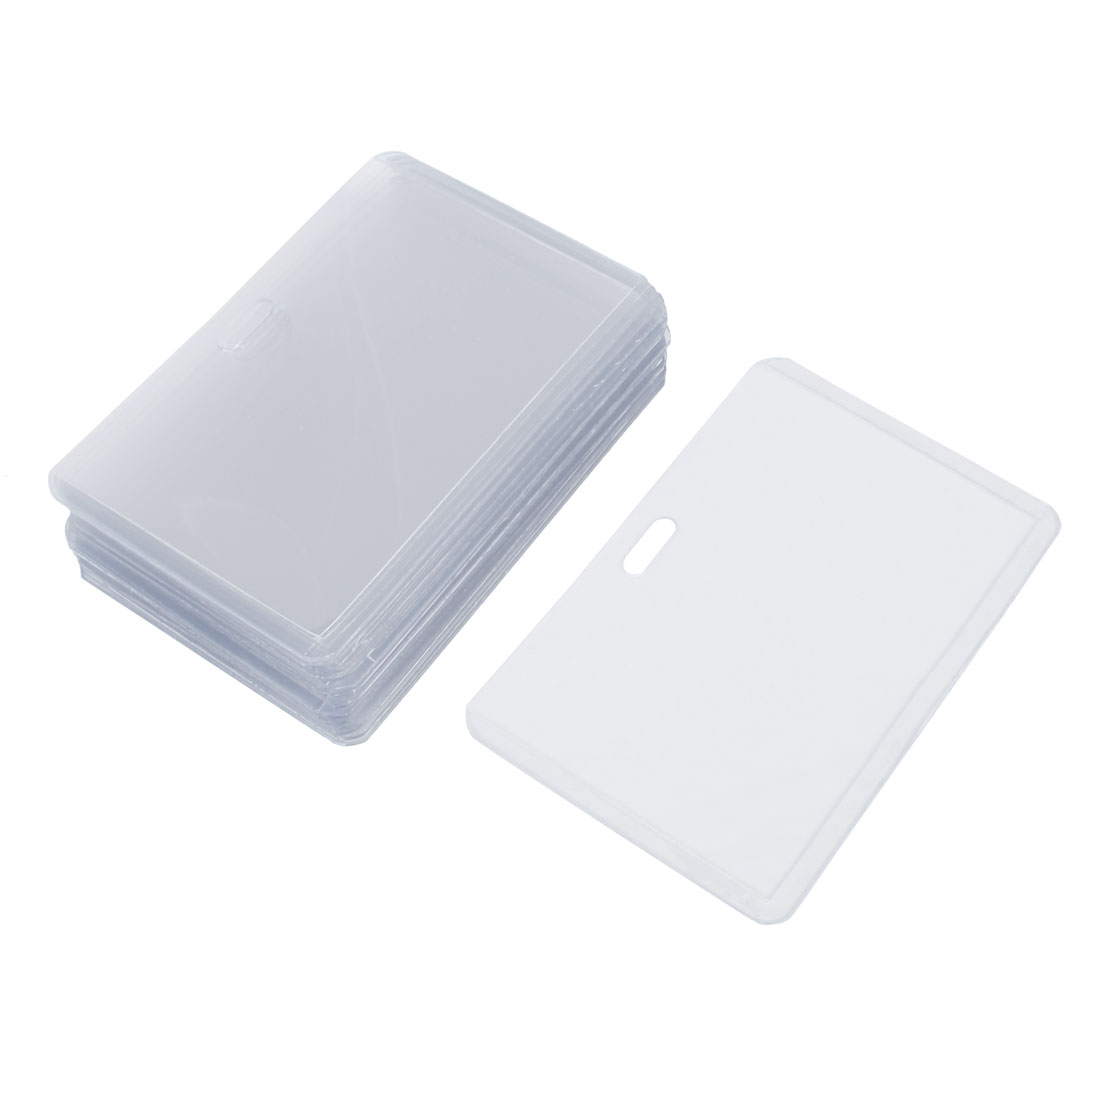 20PCS Clear Plastic Business Badge Credit Card Holder Case for Staff